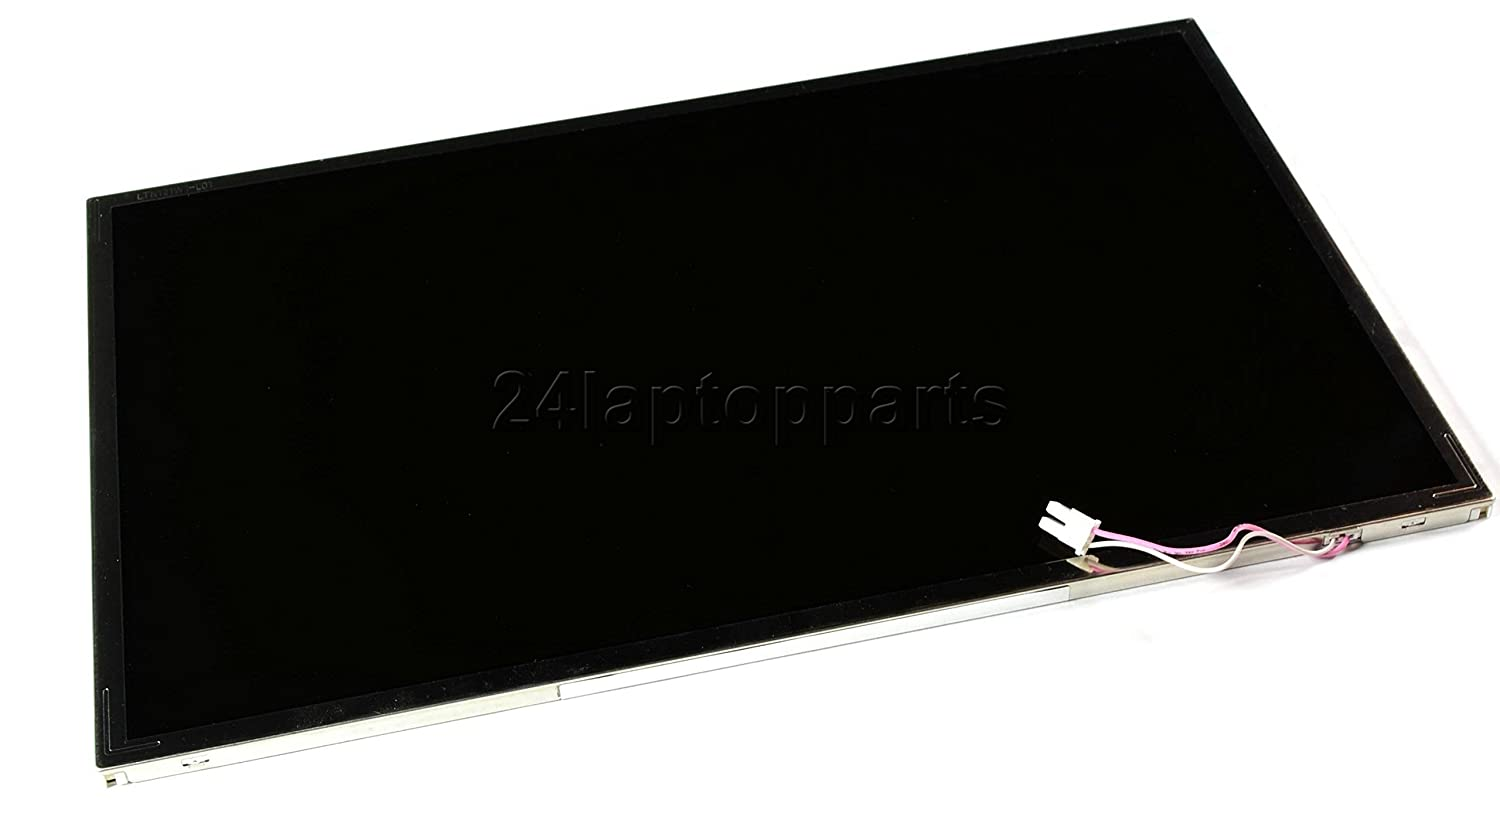 Amazon Samsung Ltn121w1 L01 Replacement LAPTOP LCD Screen 121 WXGA CCFL SINGLE Substitute Only Not A Laptop Computers